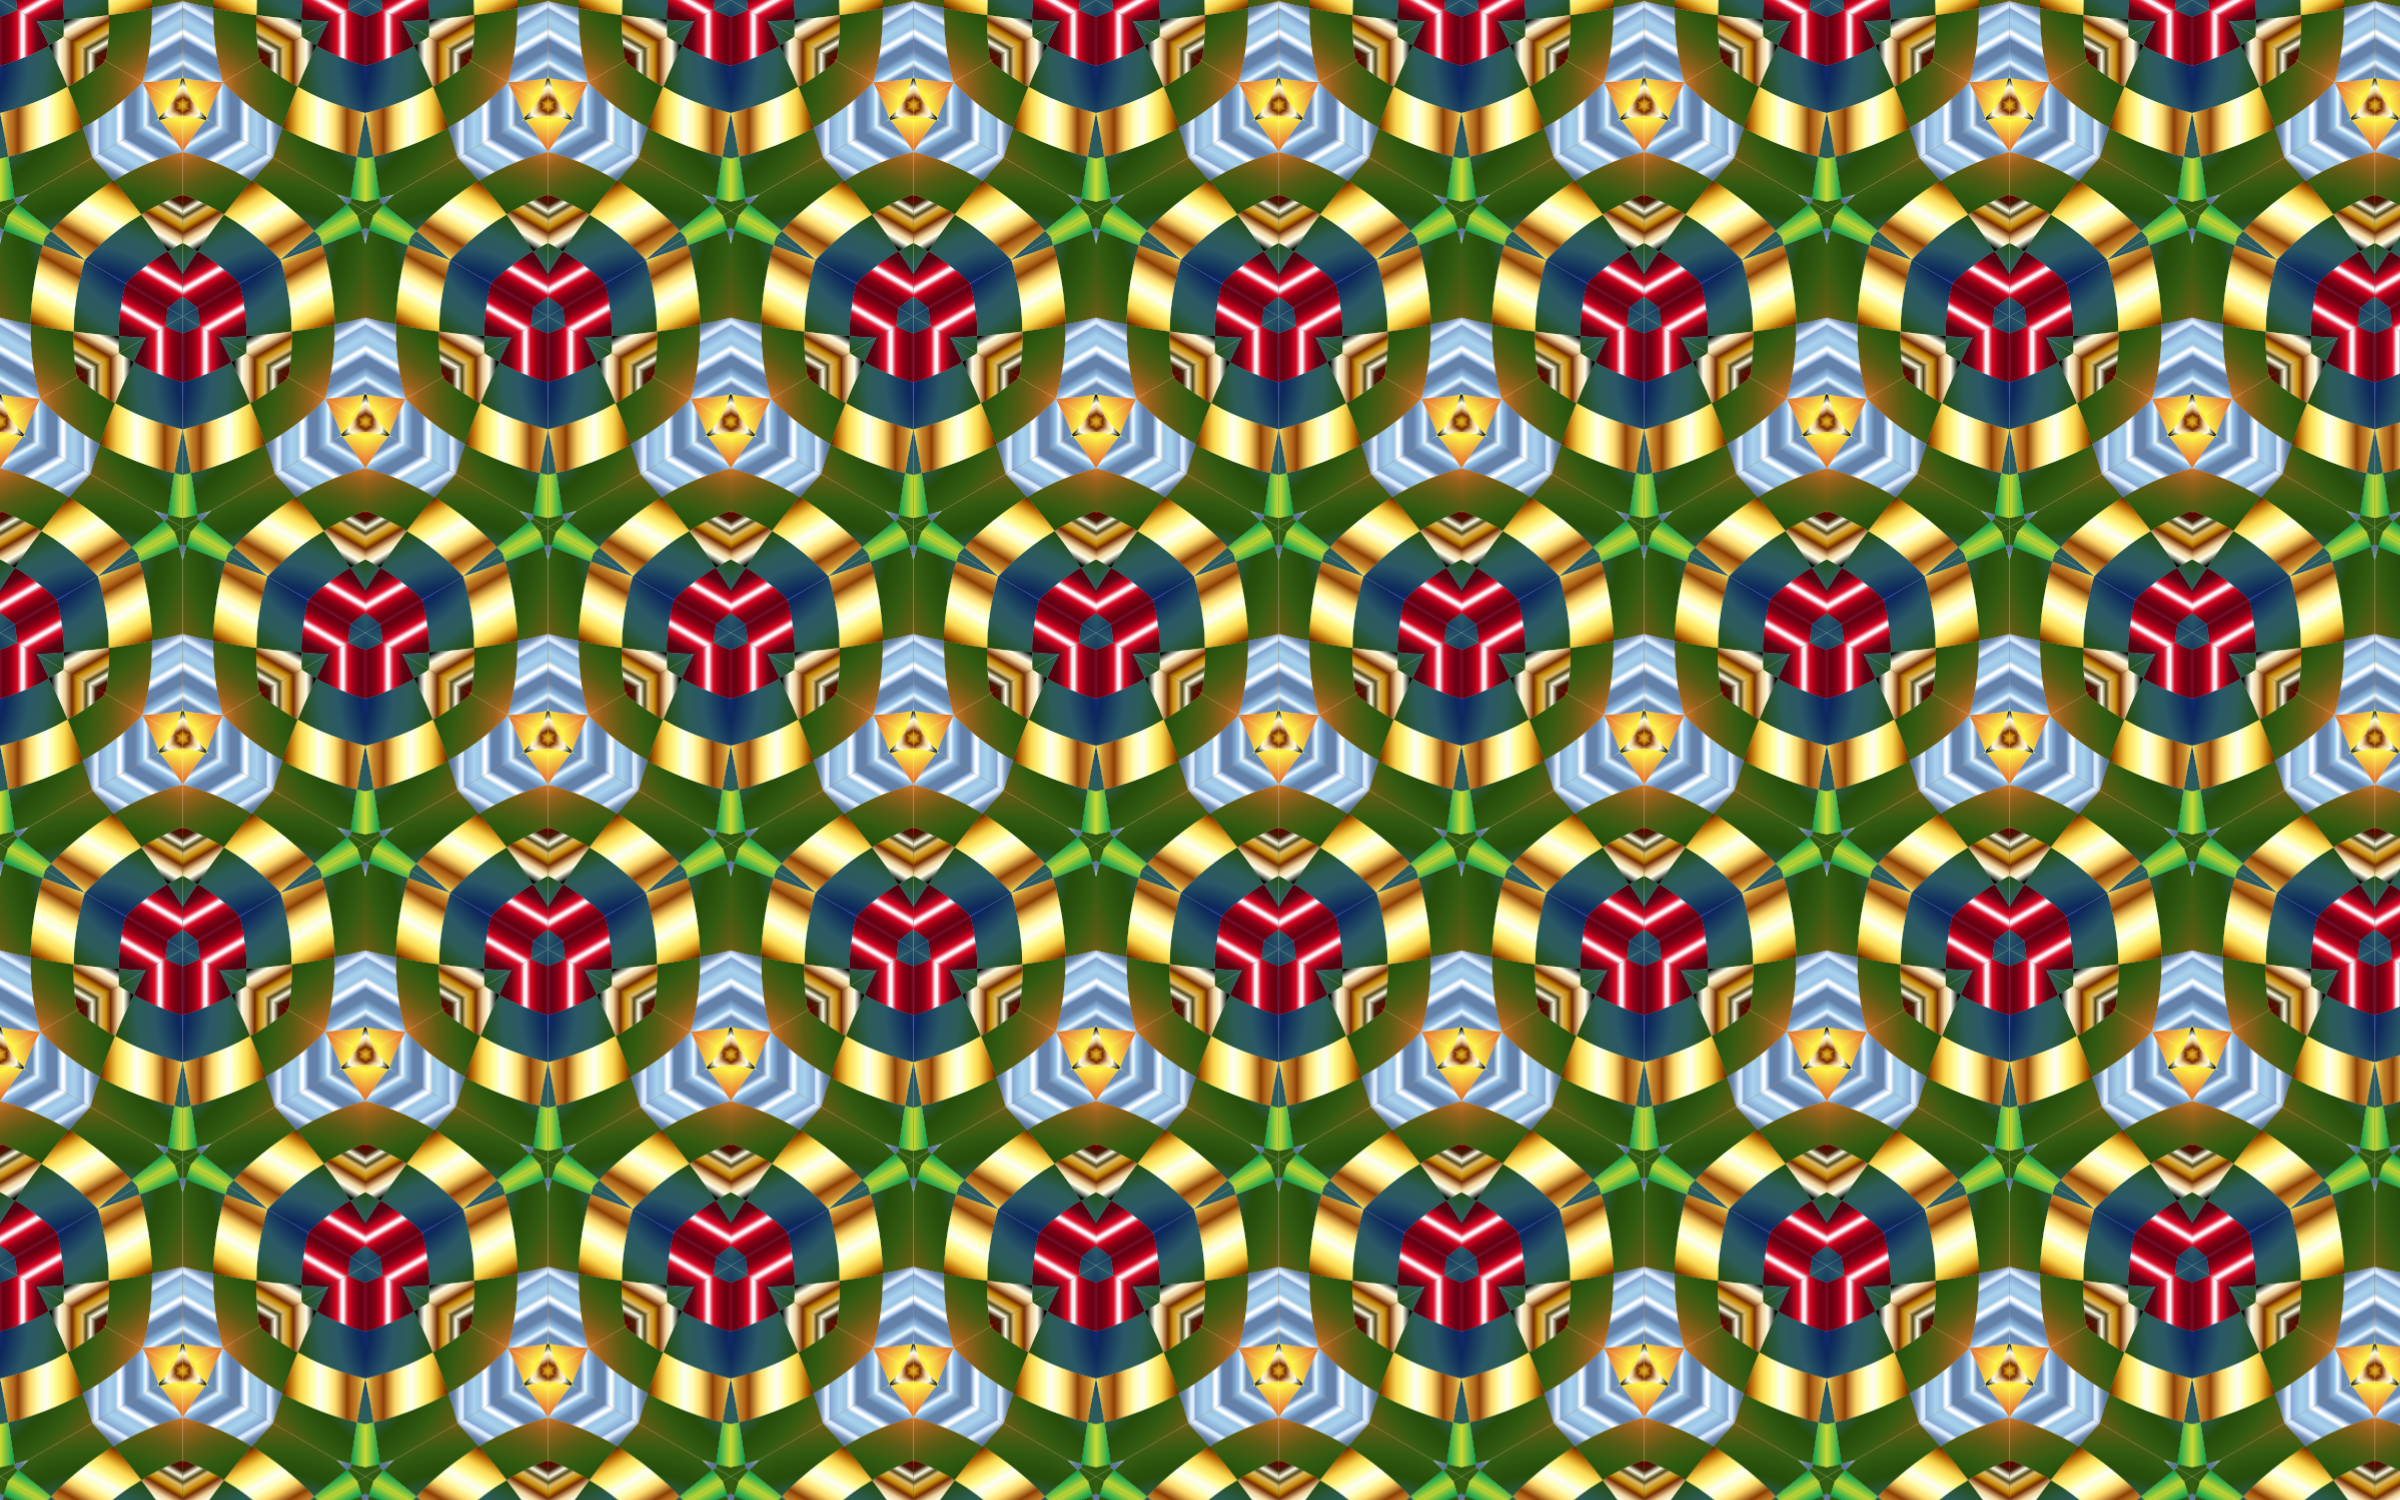 Seamless Pattern 92 by GDJ